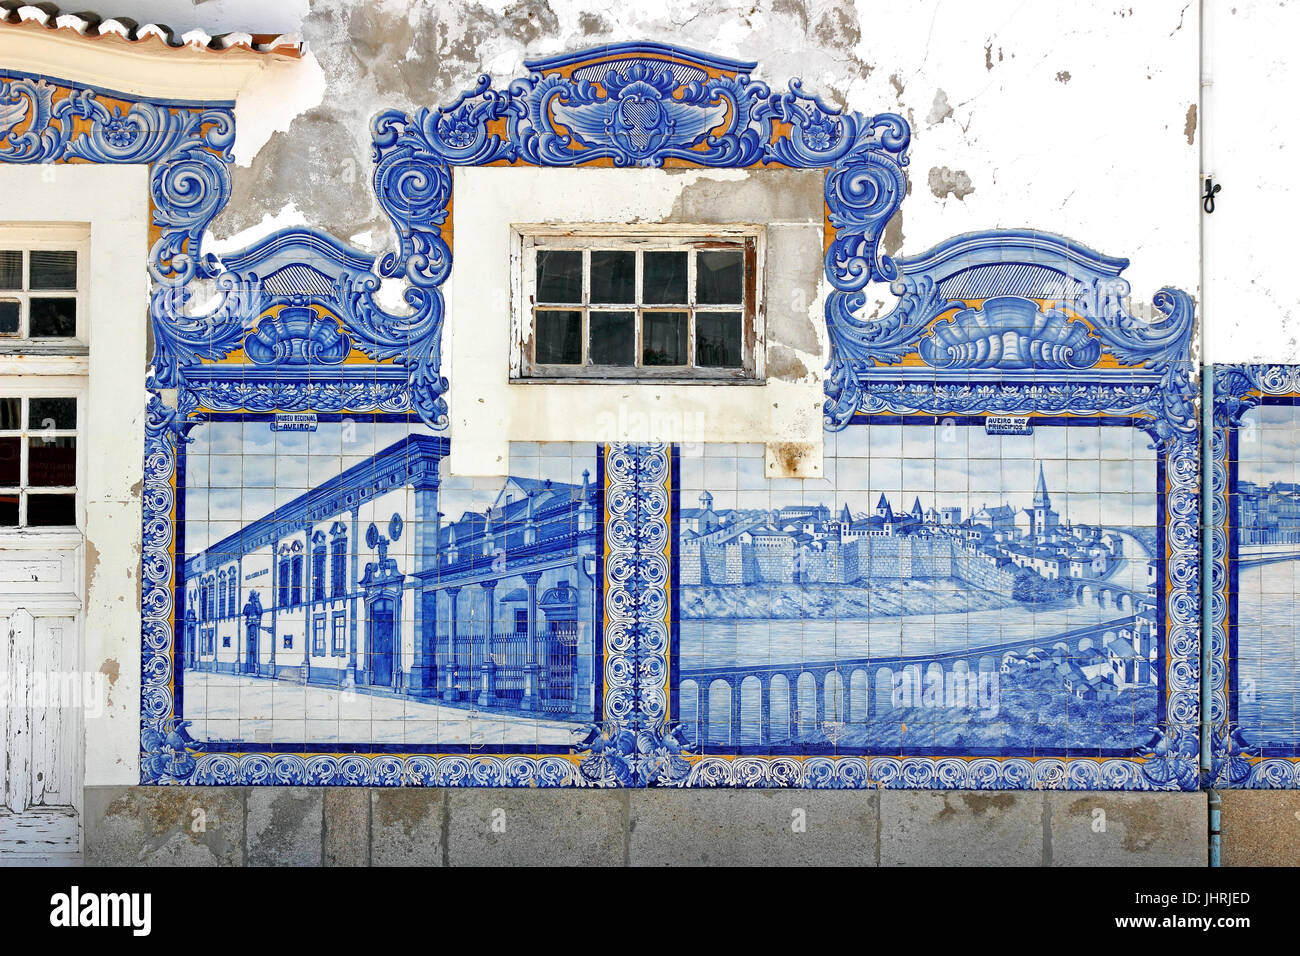 Decorative tile wall blue Azulejos on the old train station Aveiro Portugal - Stock Image